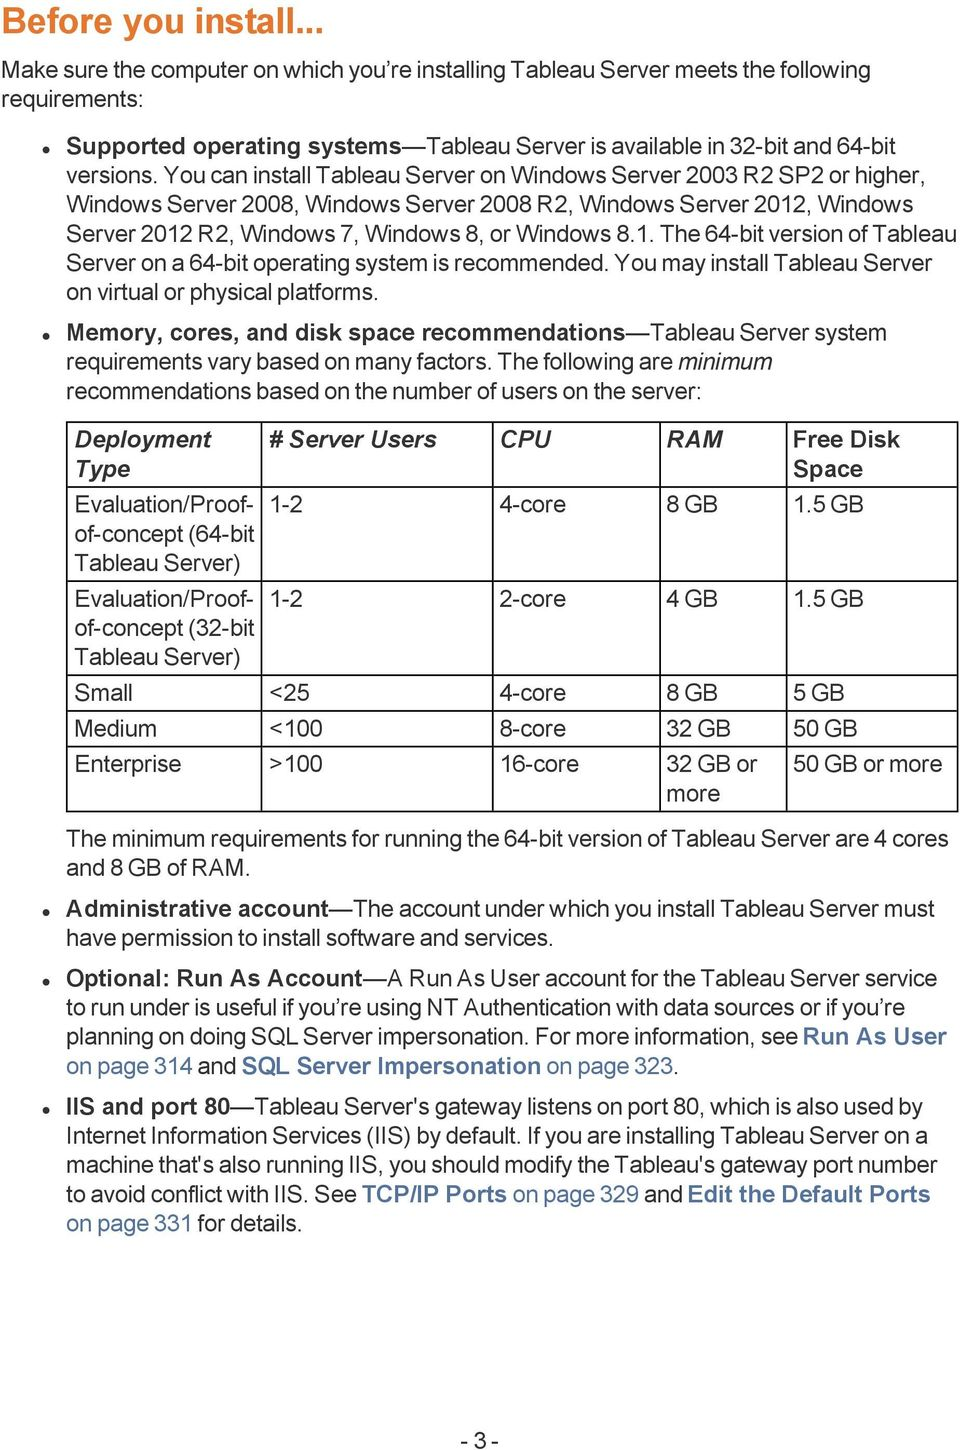 Tableau Server Administrator Guide - PDF